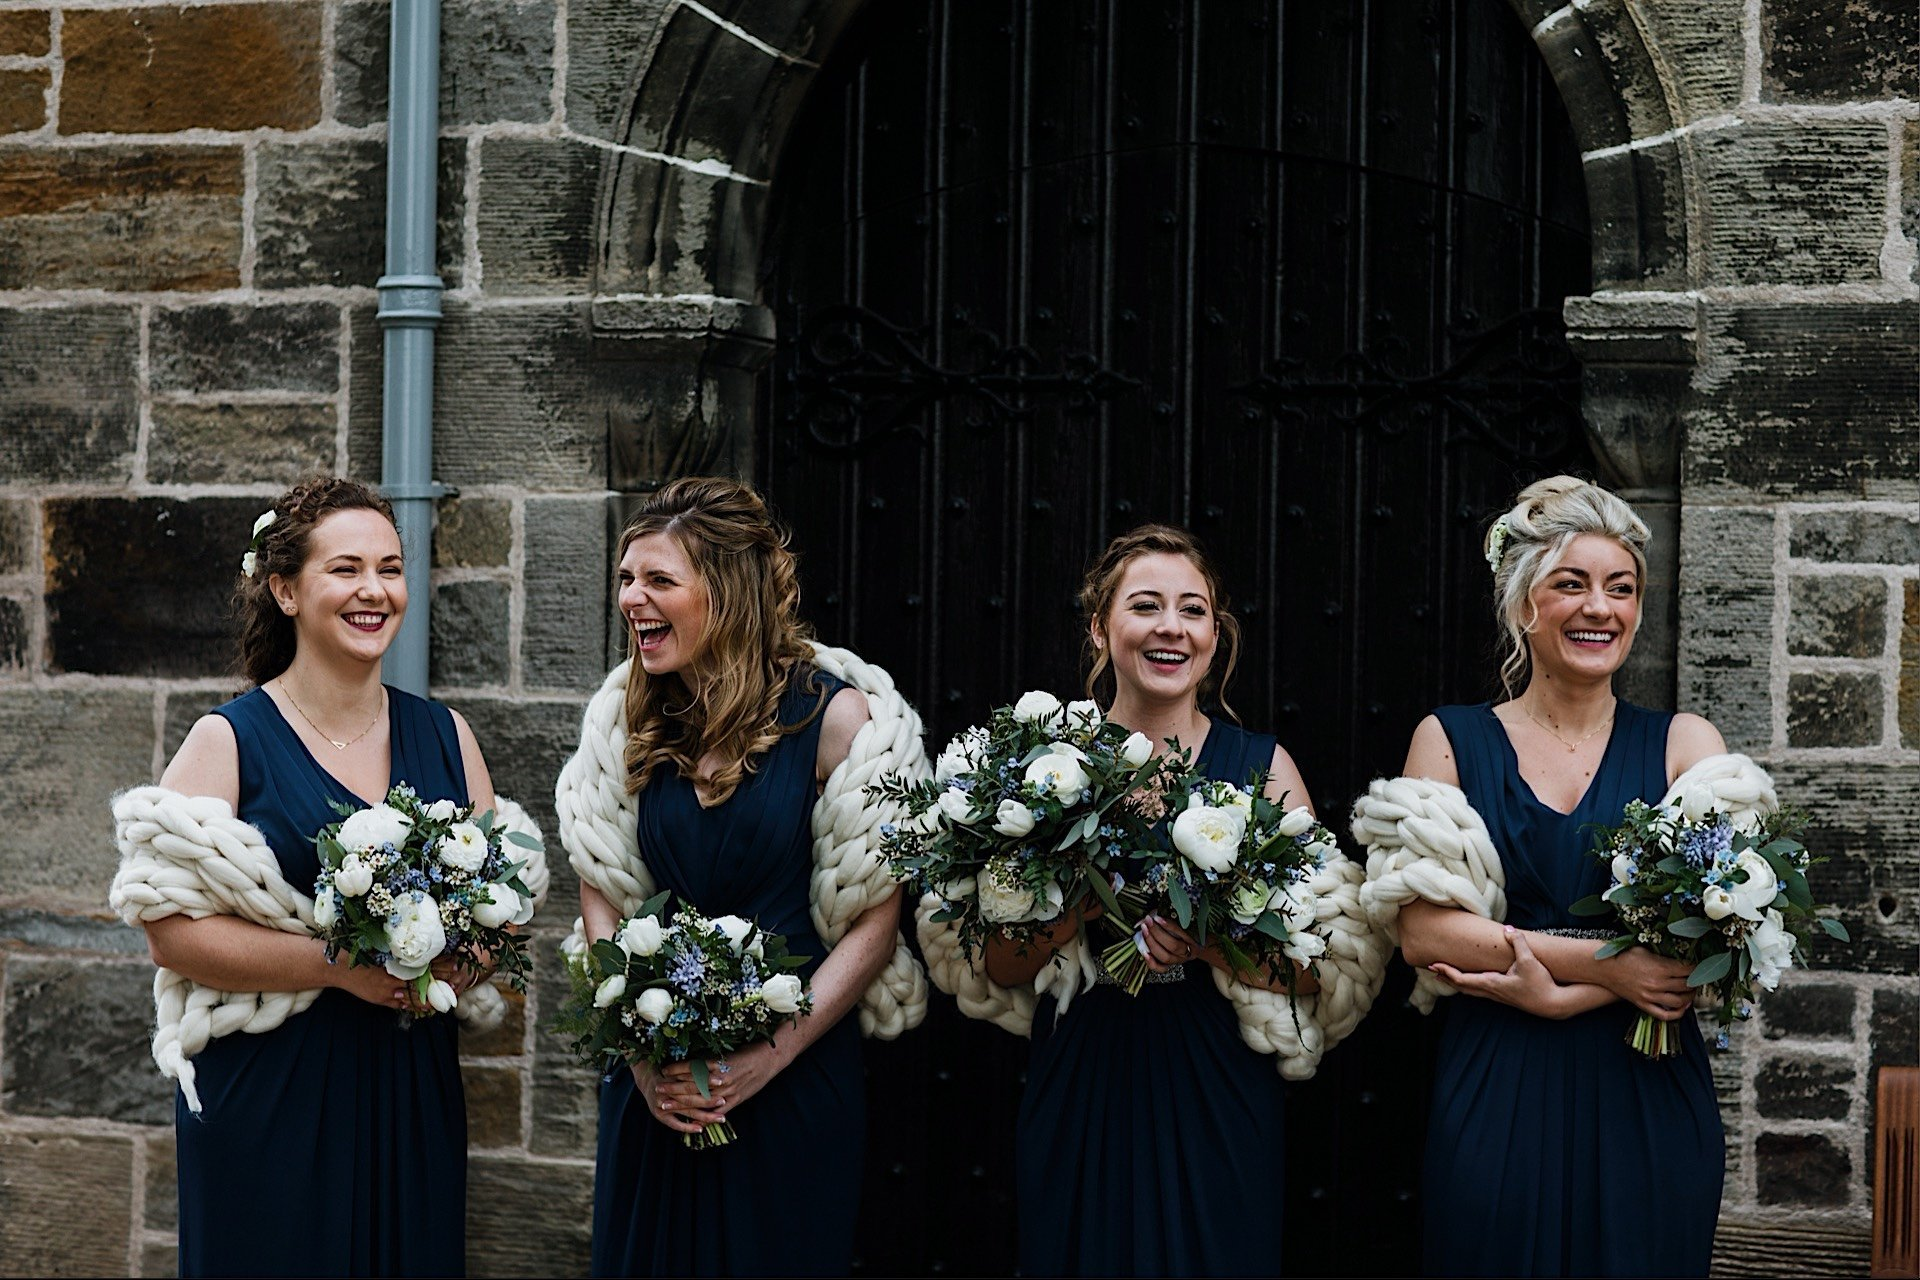 knit blue shawls bridesmaids navy dresses chunky laughing Wearing and cream outside church